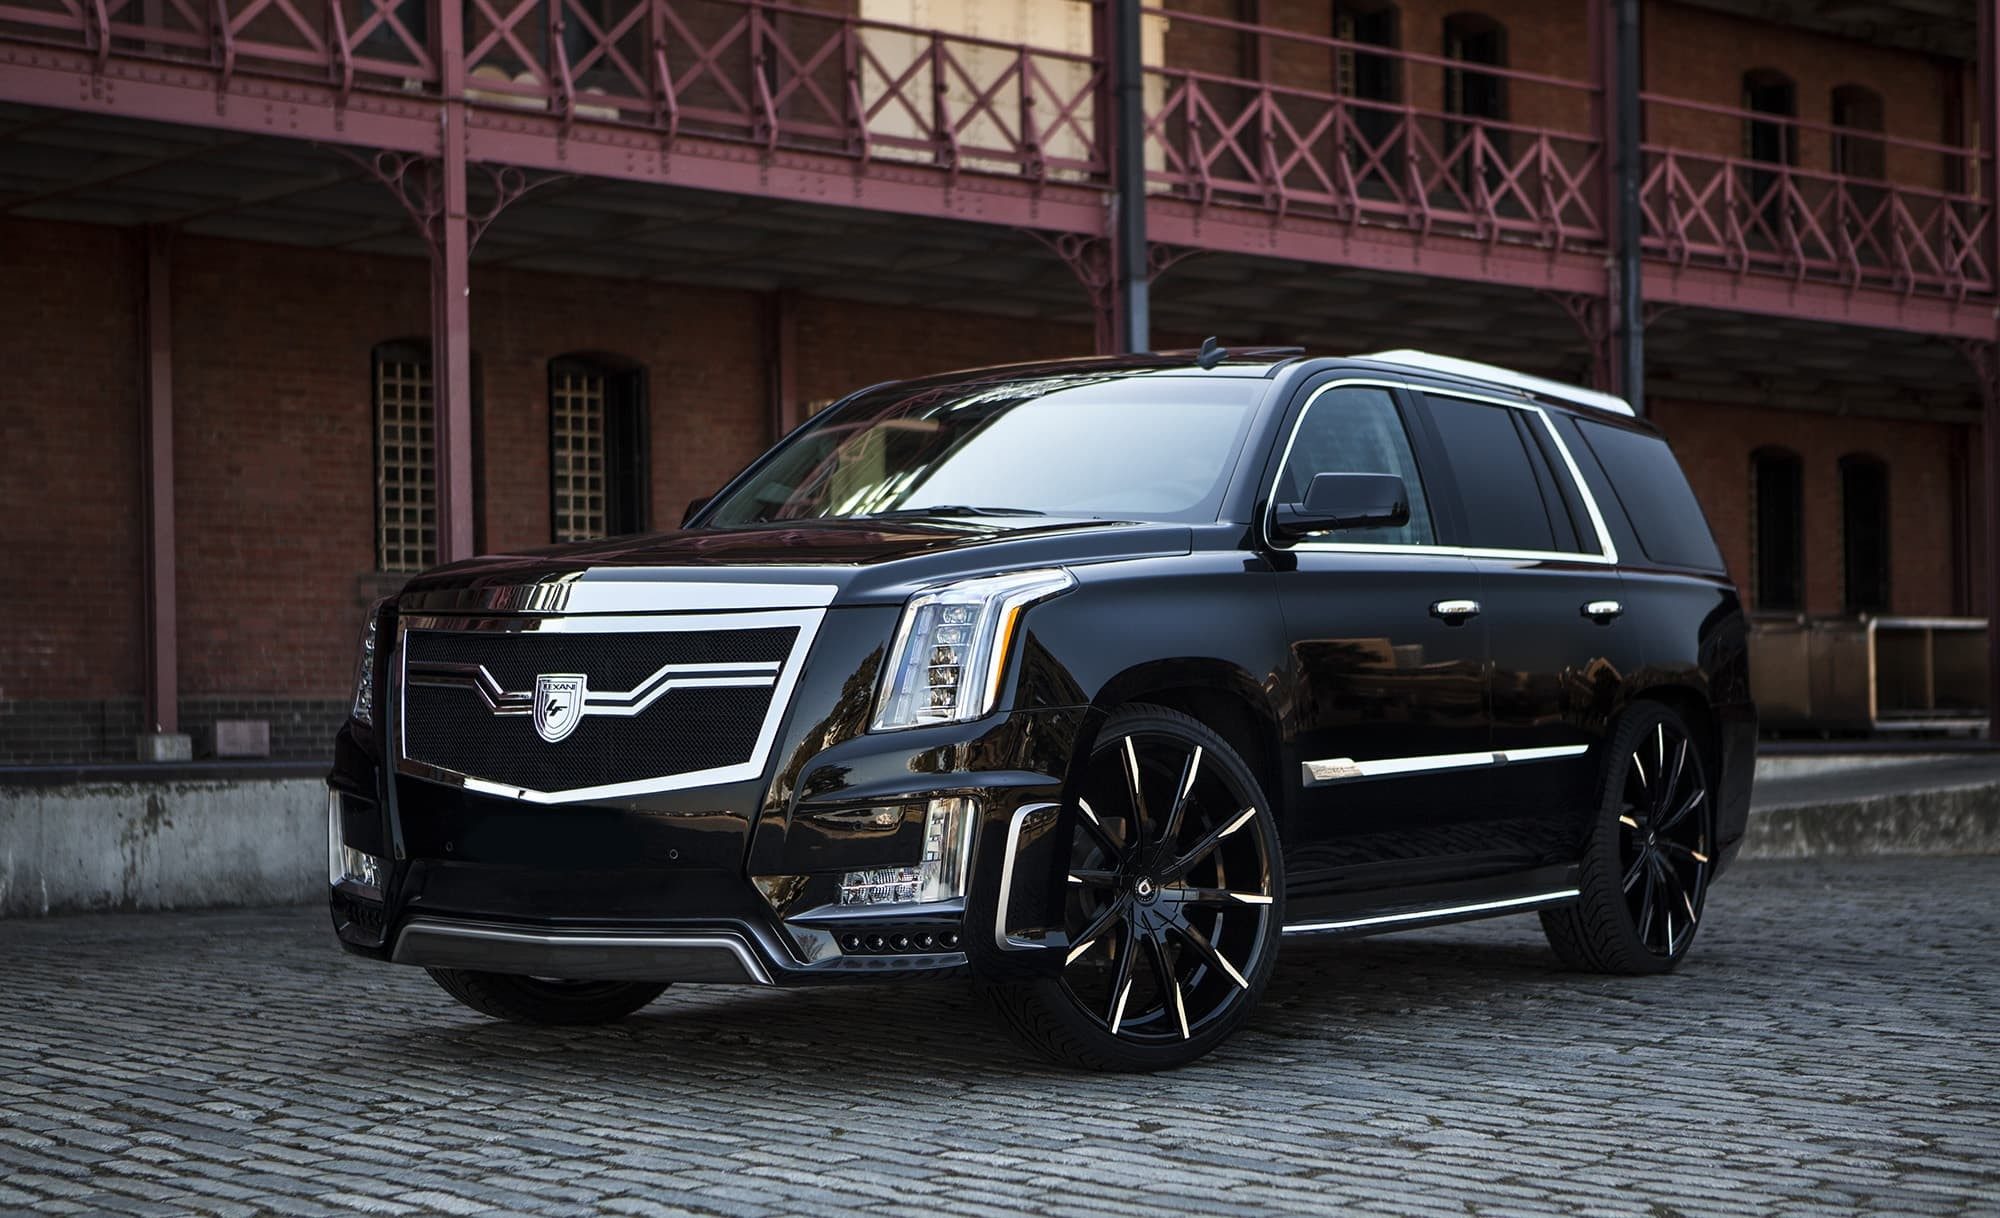 Custom CSS-15 on the Cadillac Escalade.